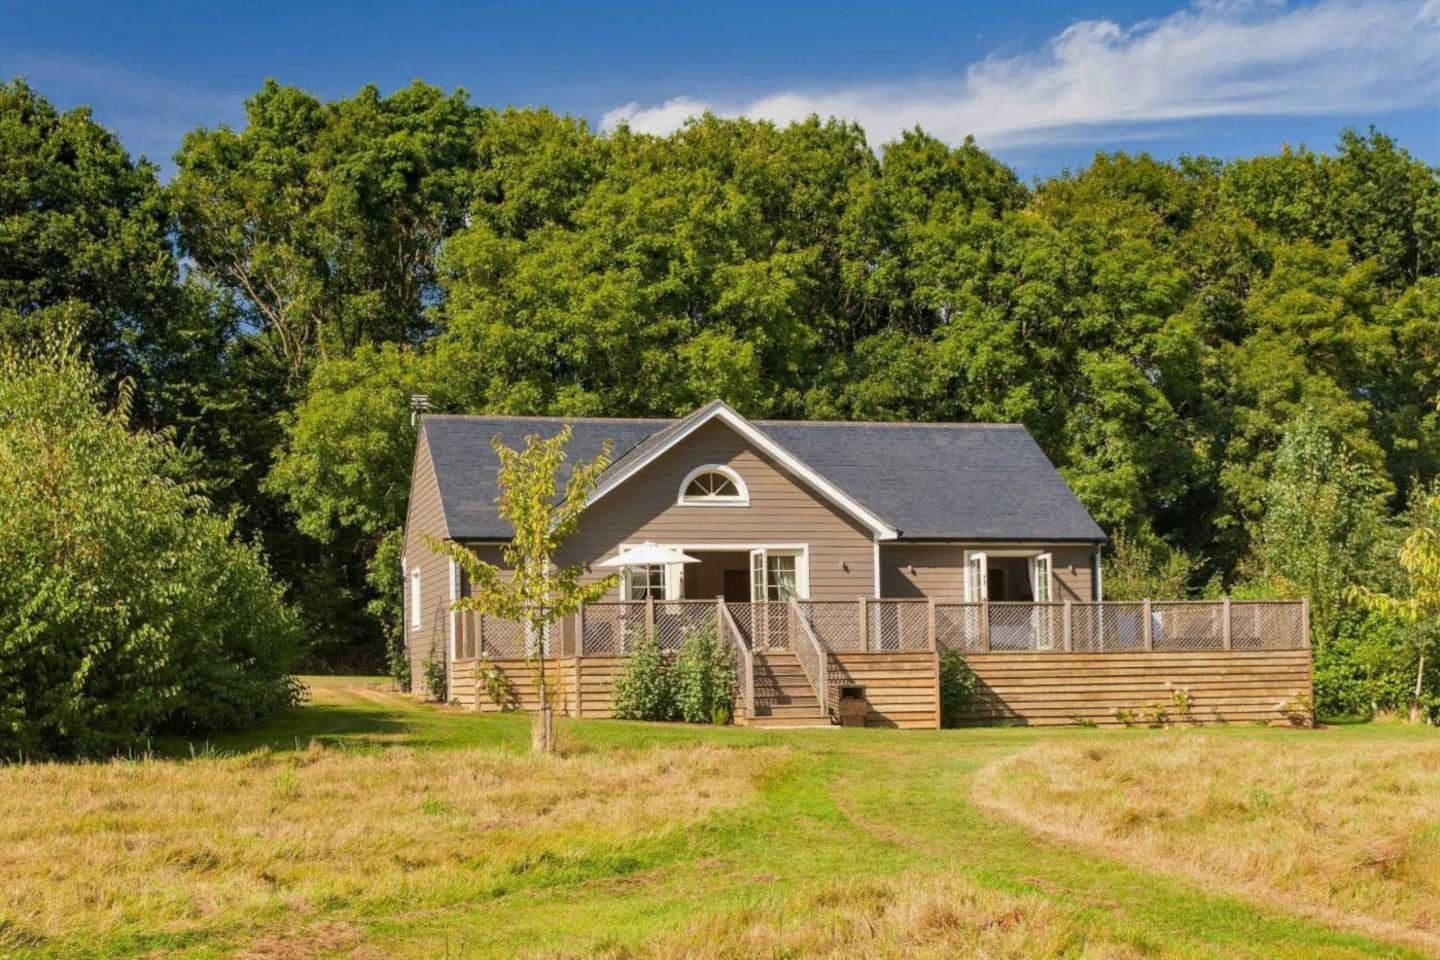 Campion Lodge is a luxury 5 AA star self-catering lodge in the breath-taking Colne Valley